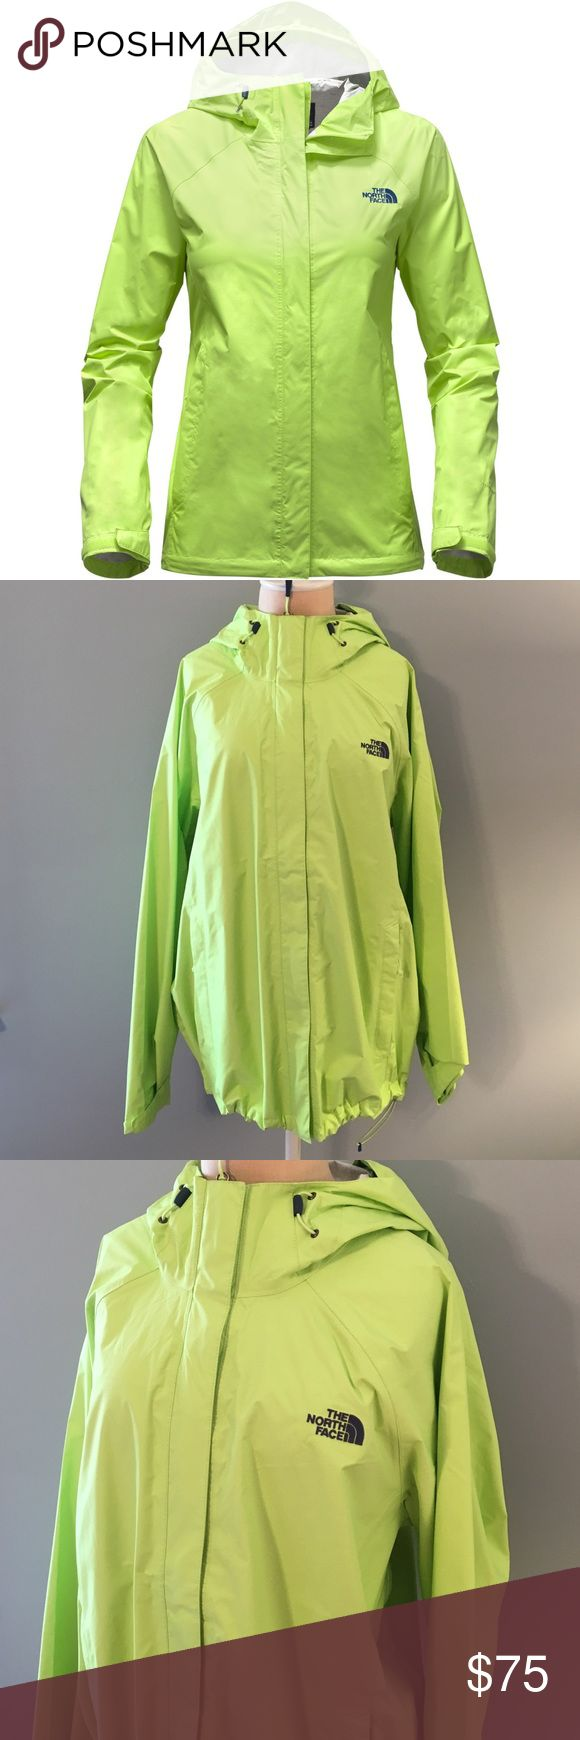 Women's The North Face Venture Jacket Size XXL. Color is Sharp Green. The Women's Venture offers superior year-round storm protection, whether you're in the back woods, or back in the city. It's a waterproof, breathable, seam-sealed, 2.5-layer shell with an attached and fully adjustable hood. The stormflap center closes with Velcro tabs, protecting the zipper area and the hand pockets secure-zip, avoiding leakage, as well. The hem has a cinch-cord and the whole thing folds up and stows away…